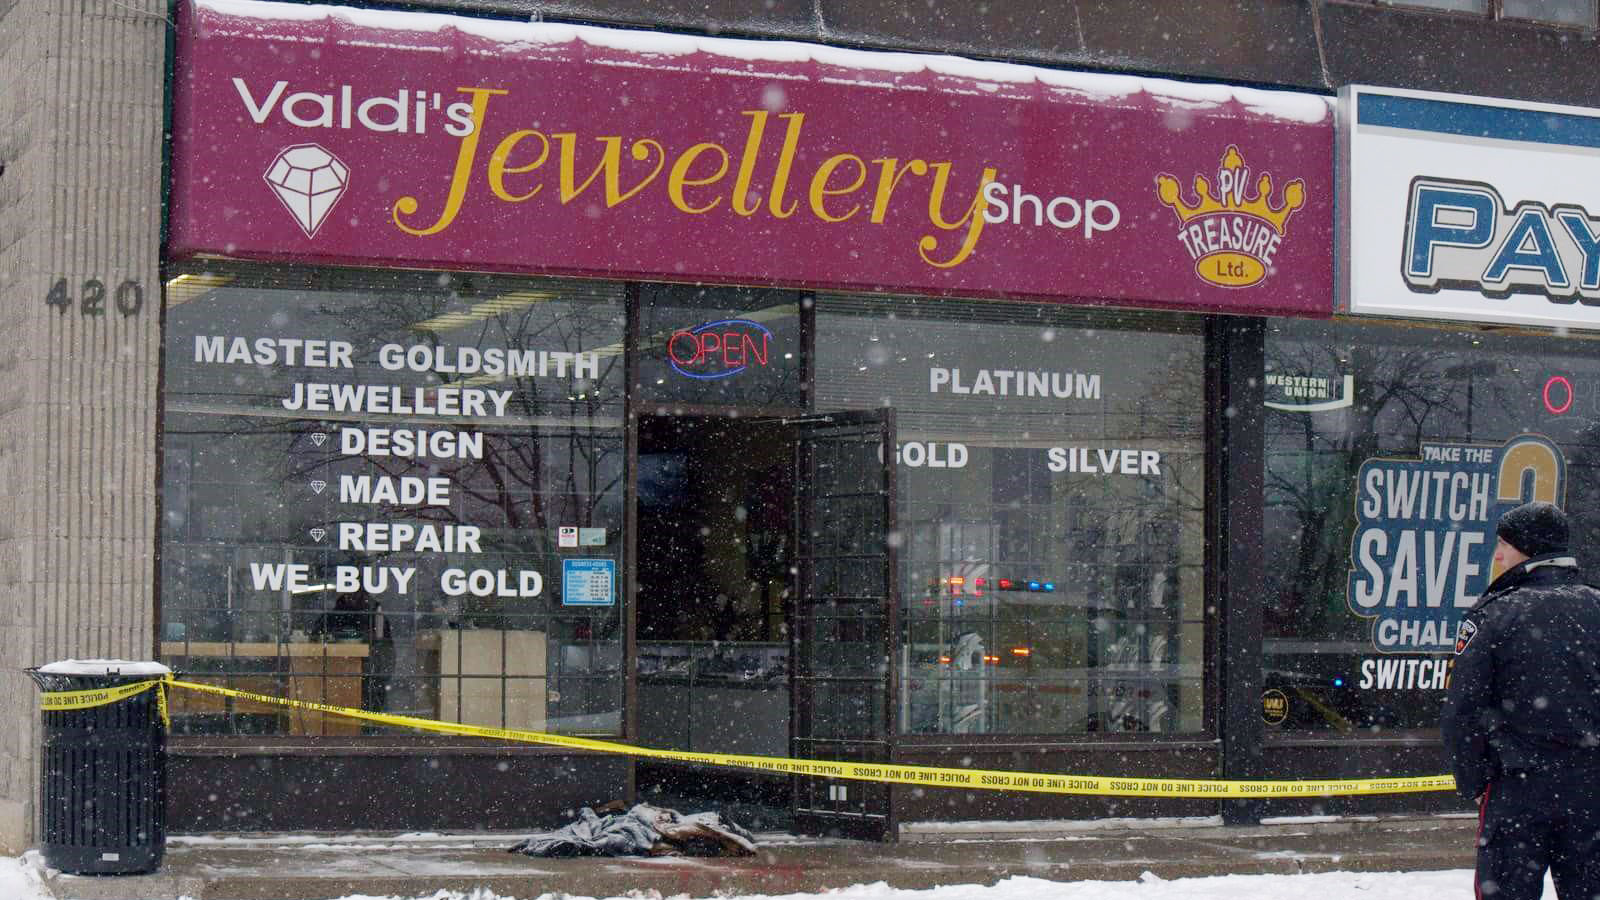 Suspects arrested after violent robbery at Oshawa jewelry store